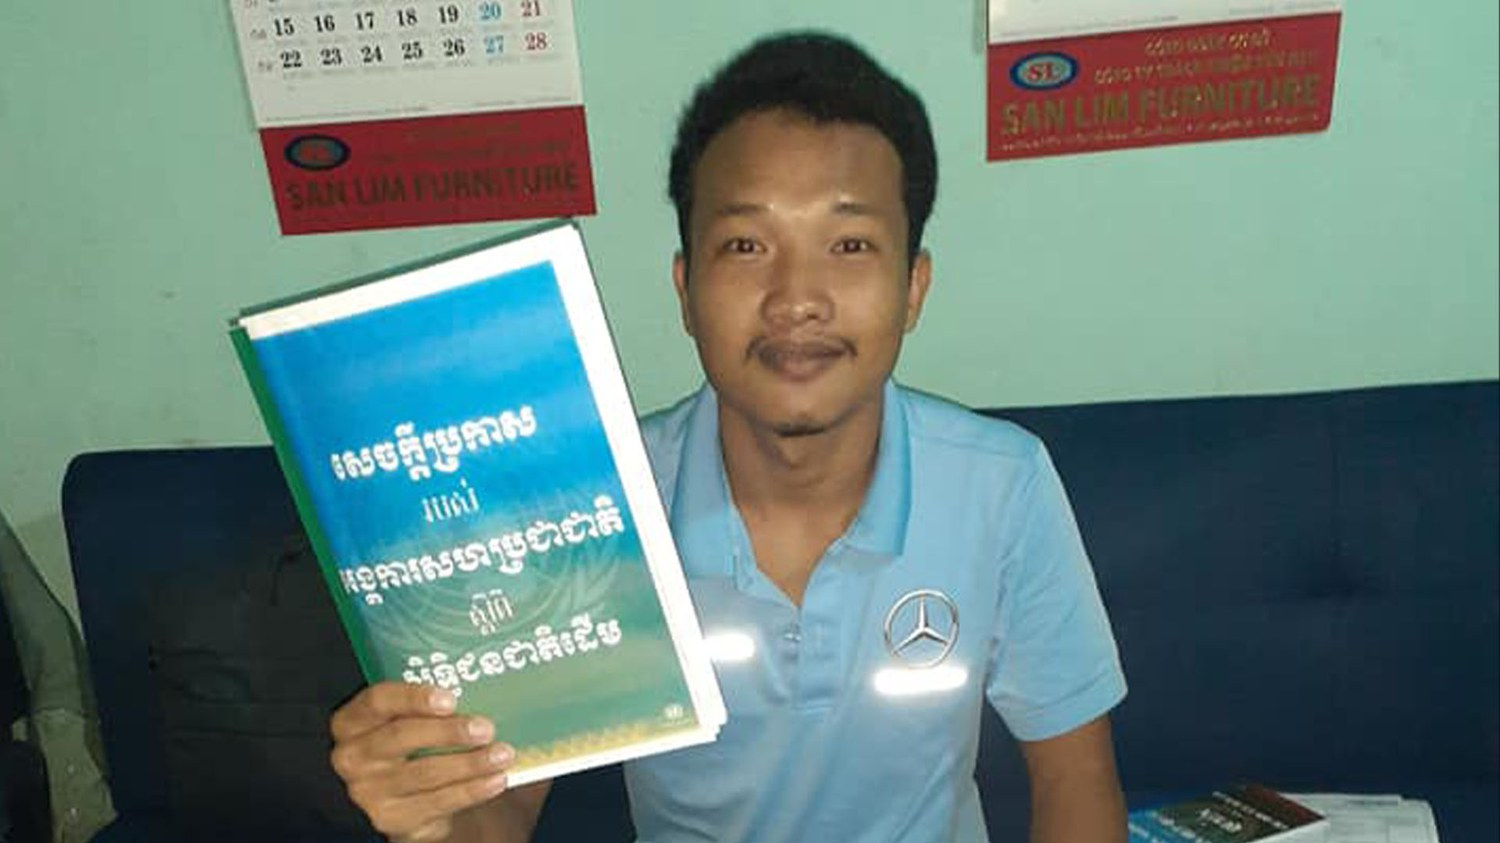 Vietnamese Authorities Detain Ethnic Khmer Krom Publisher of Book on Indigenous Rights